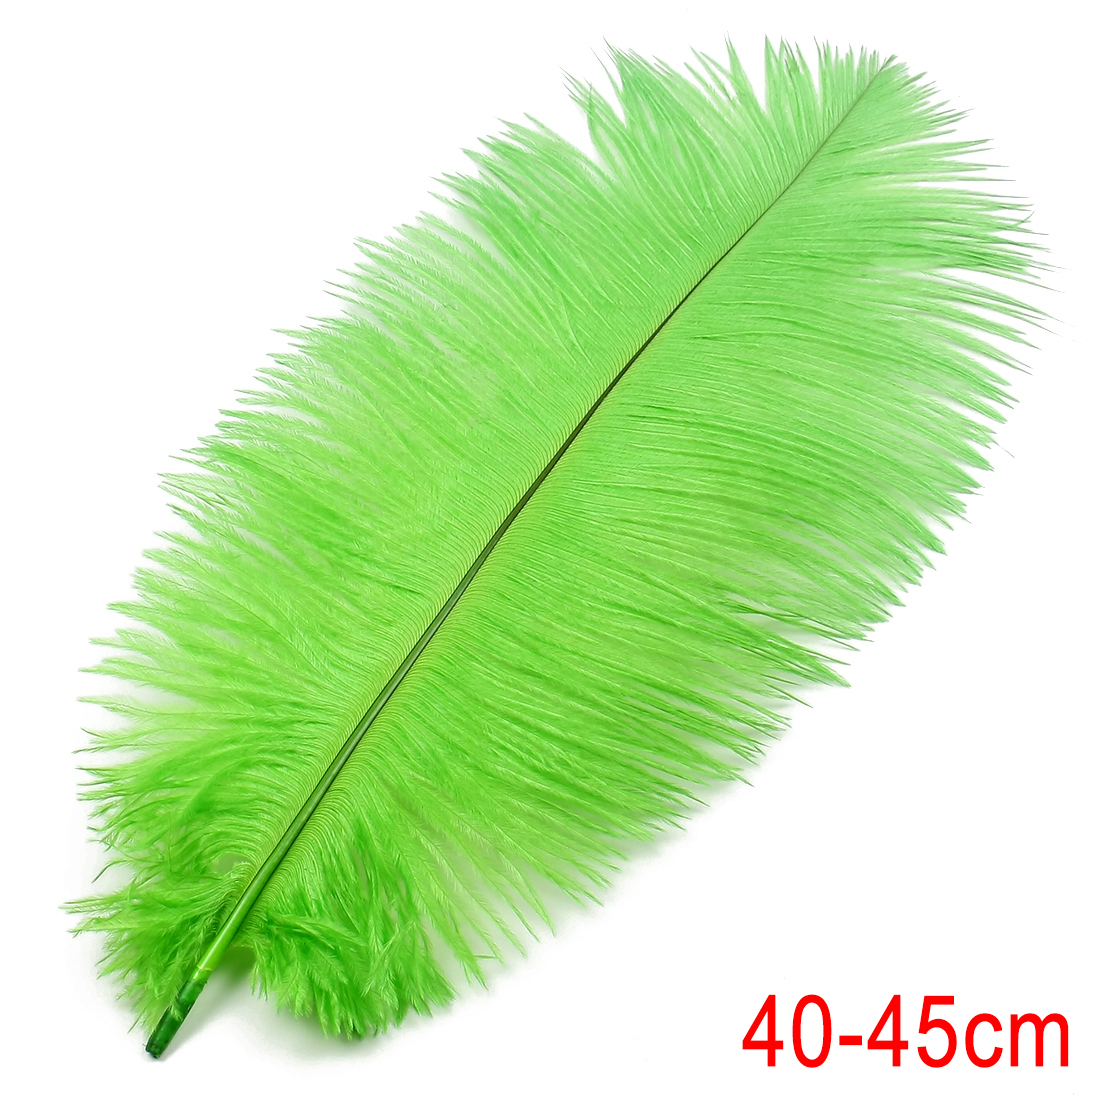 16-18inch / 40-45cm Ostrich Feather for Wedding Party Decoration Green